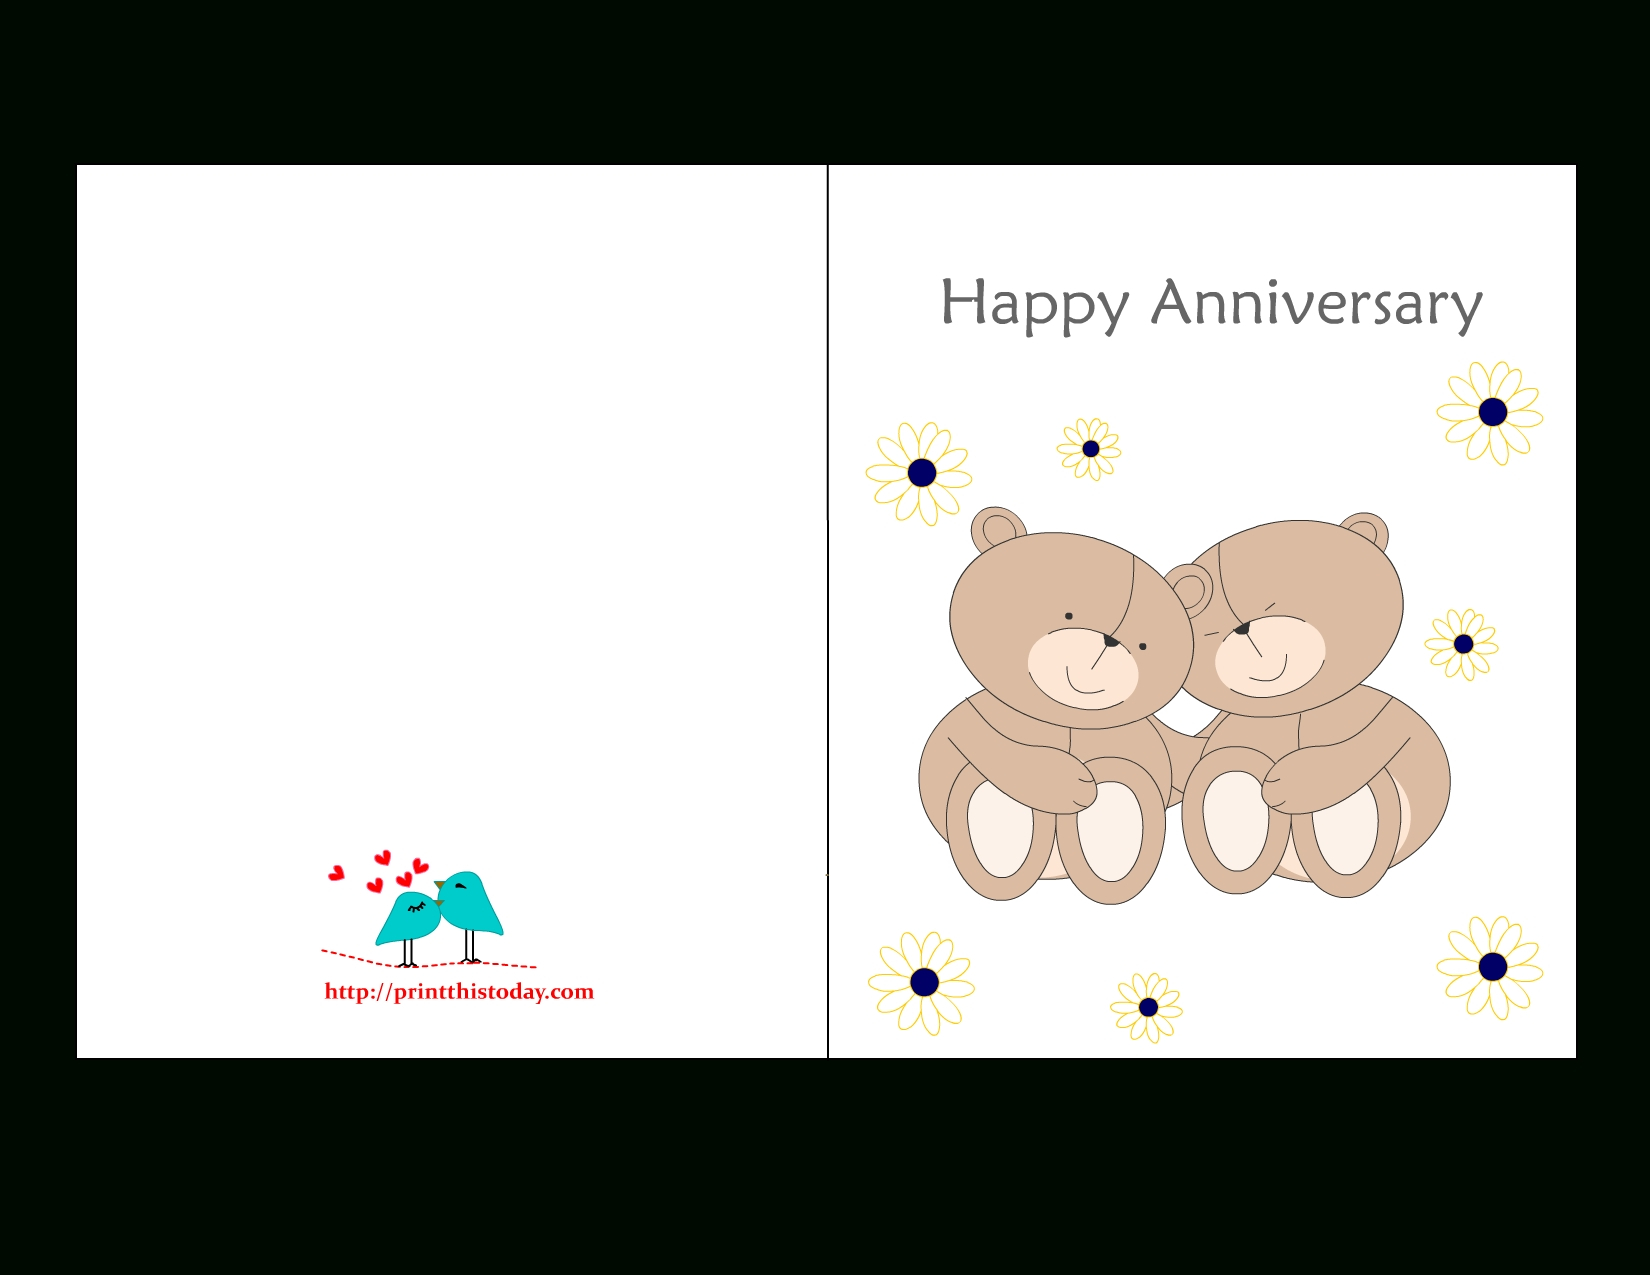 Printable Anniversary Cards For Free | Bestprintable231118 - Printable Cards Free Anniversary